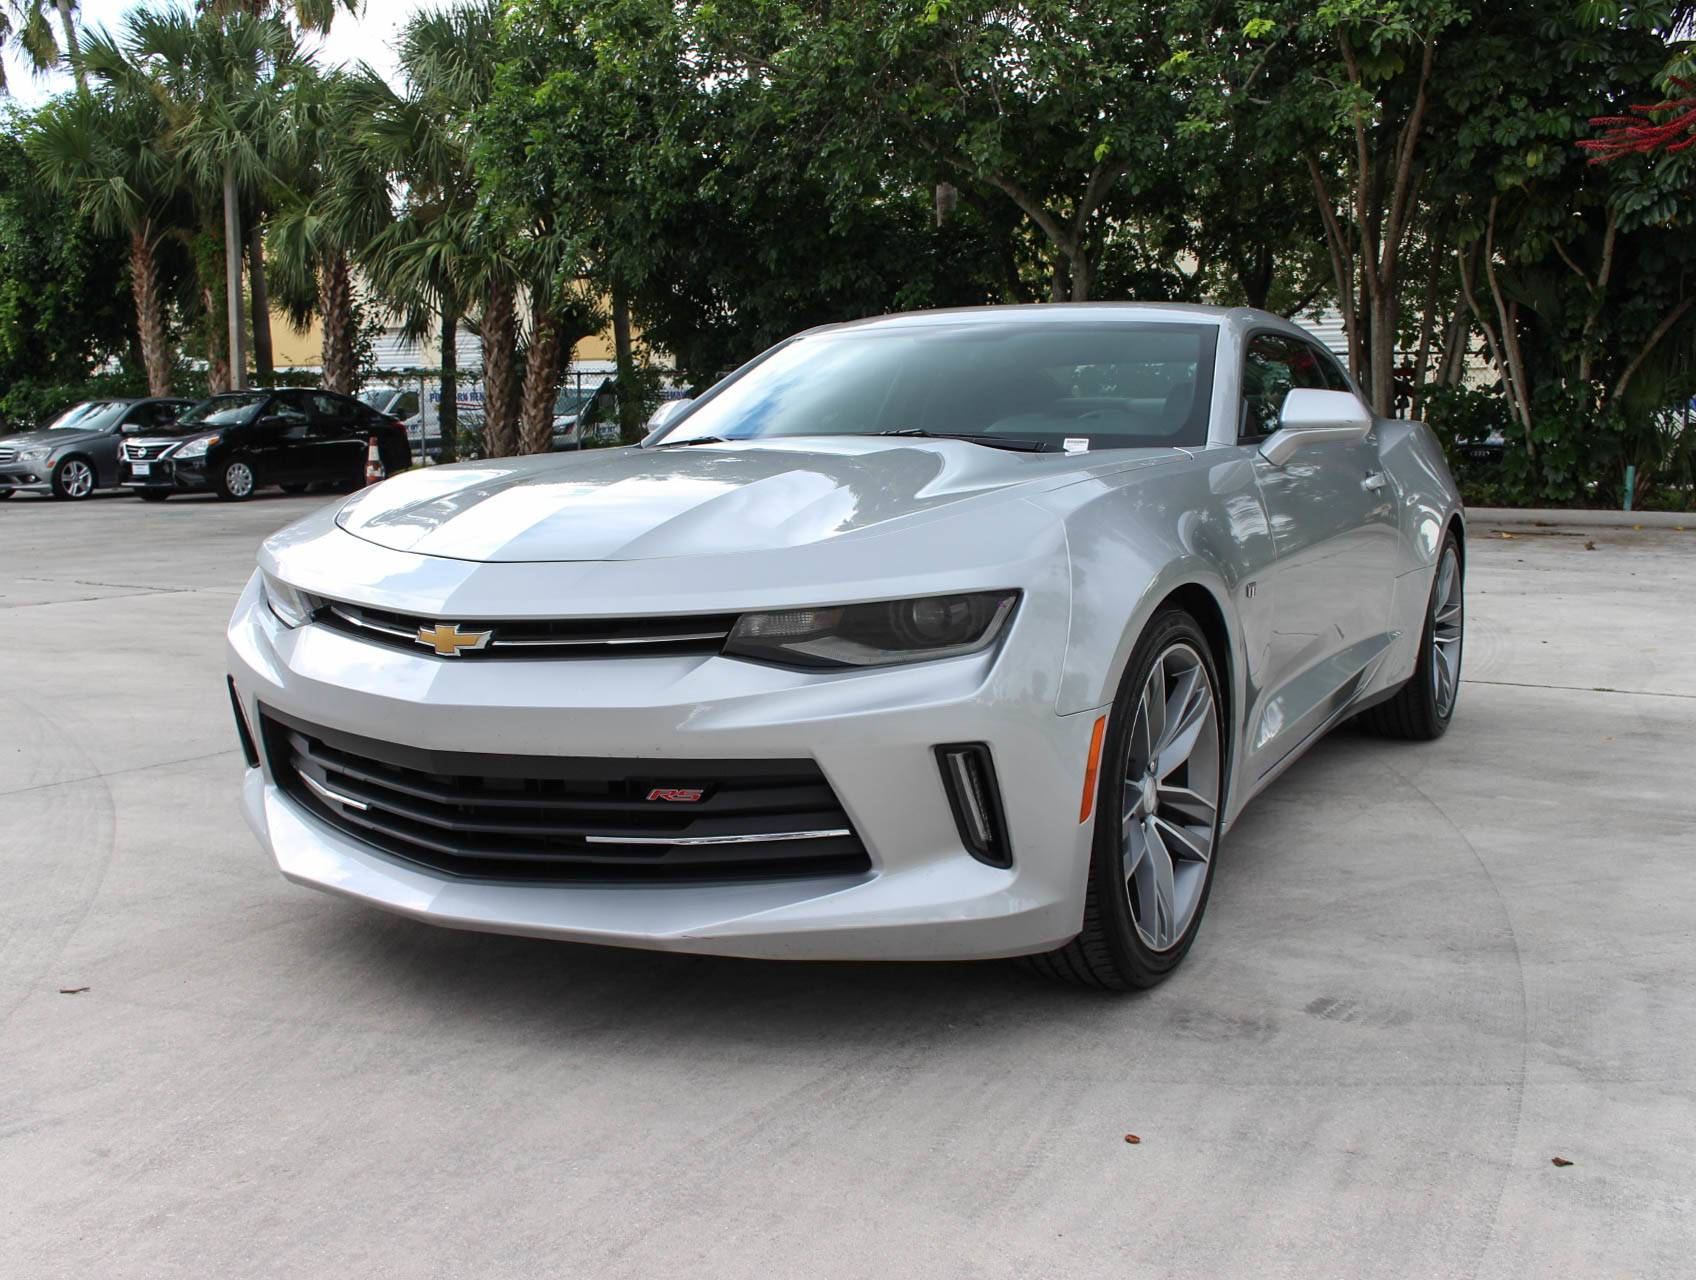 Used 2018 CHEVROLET CAMARO 1lt Rs Pkg Coupe for sale in WEST